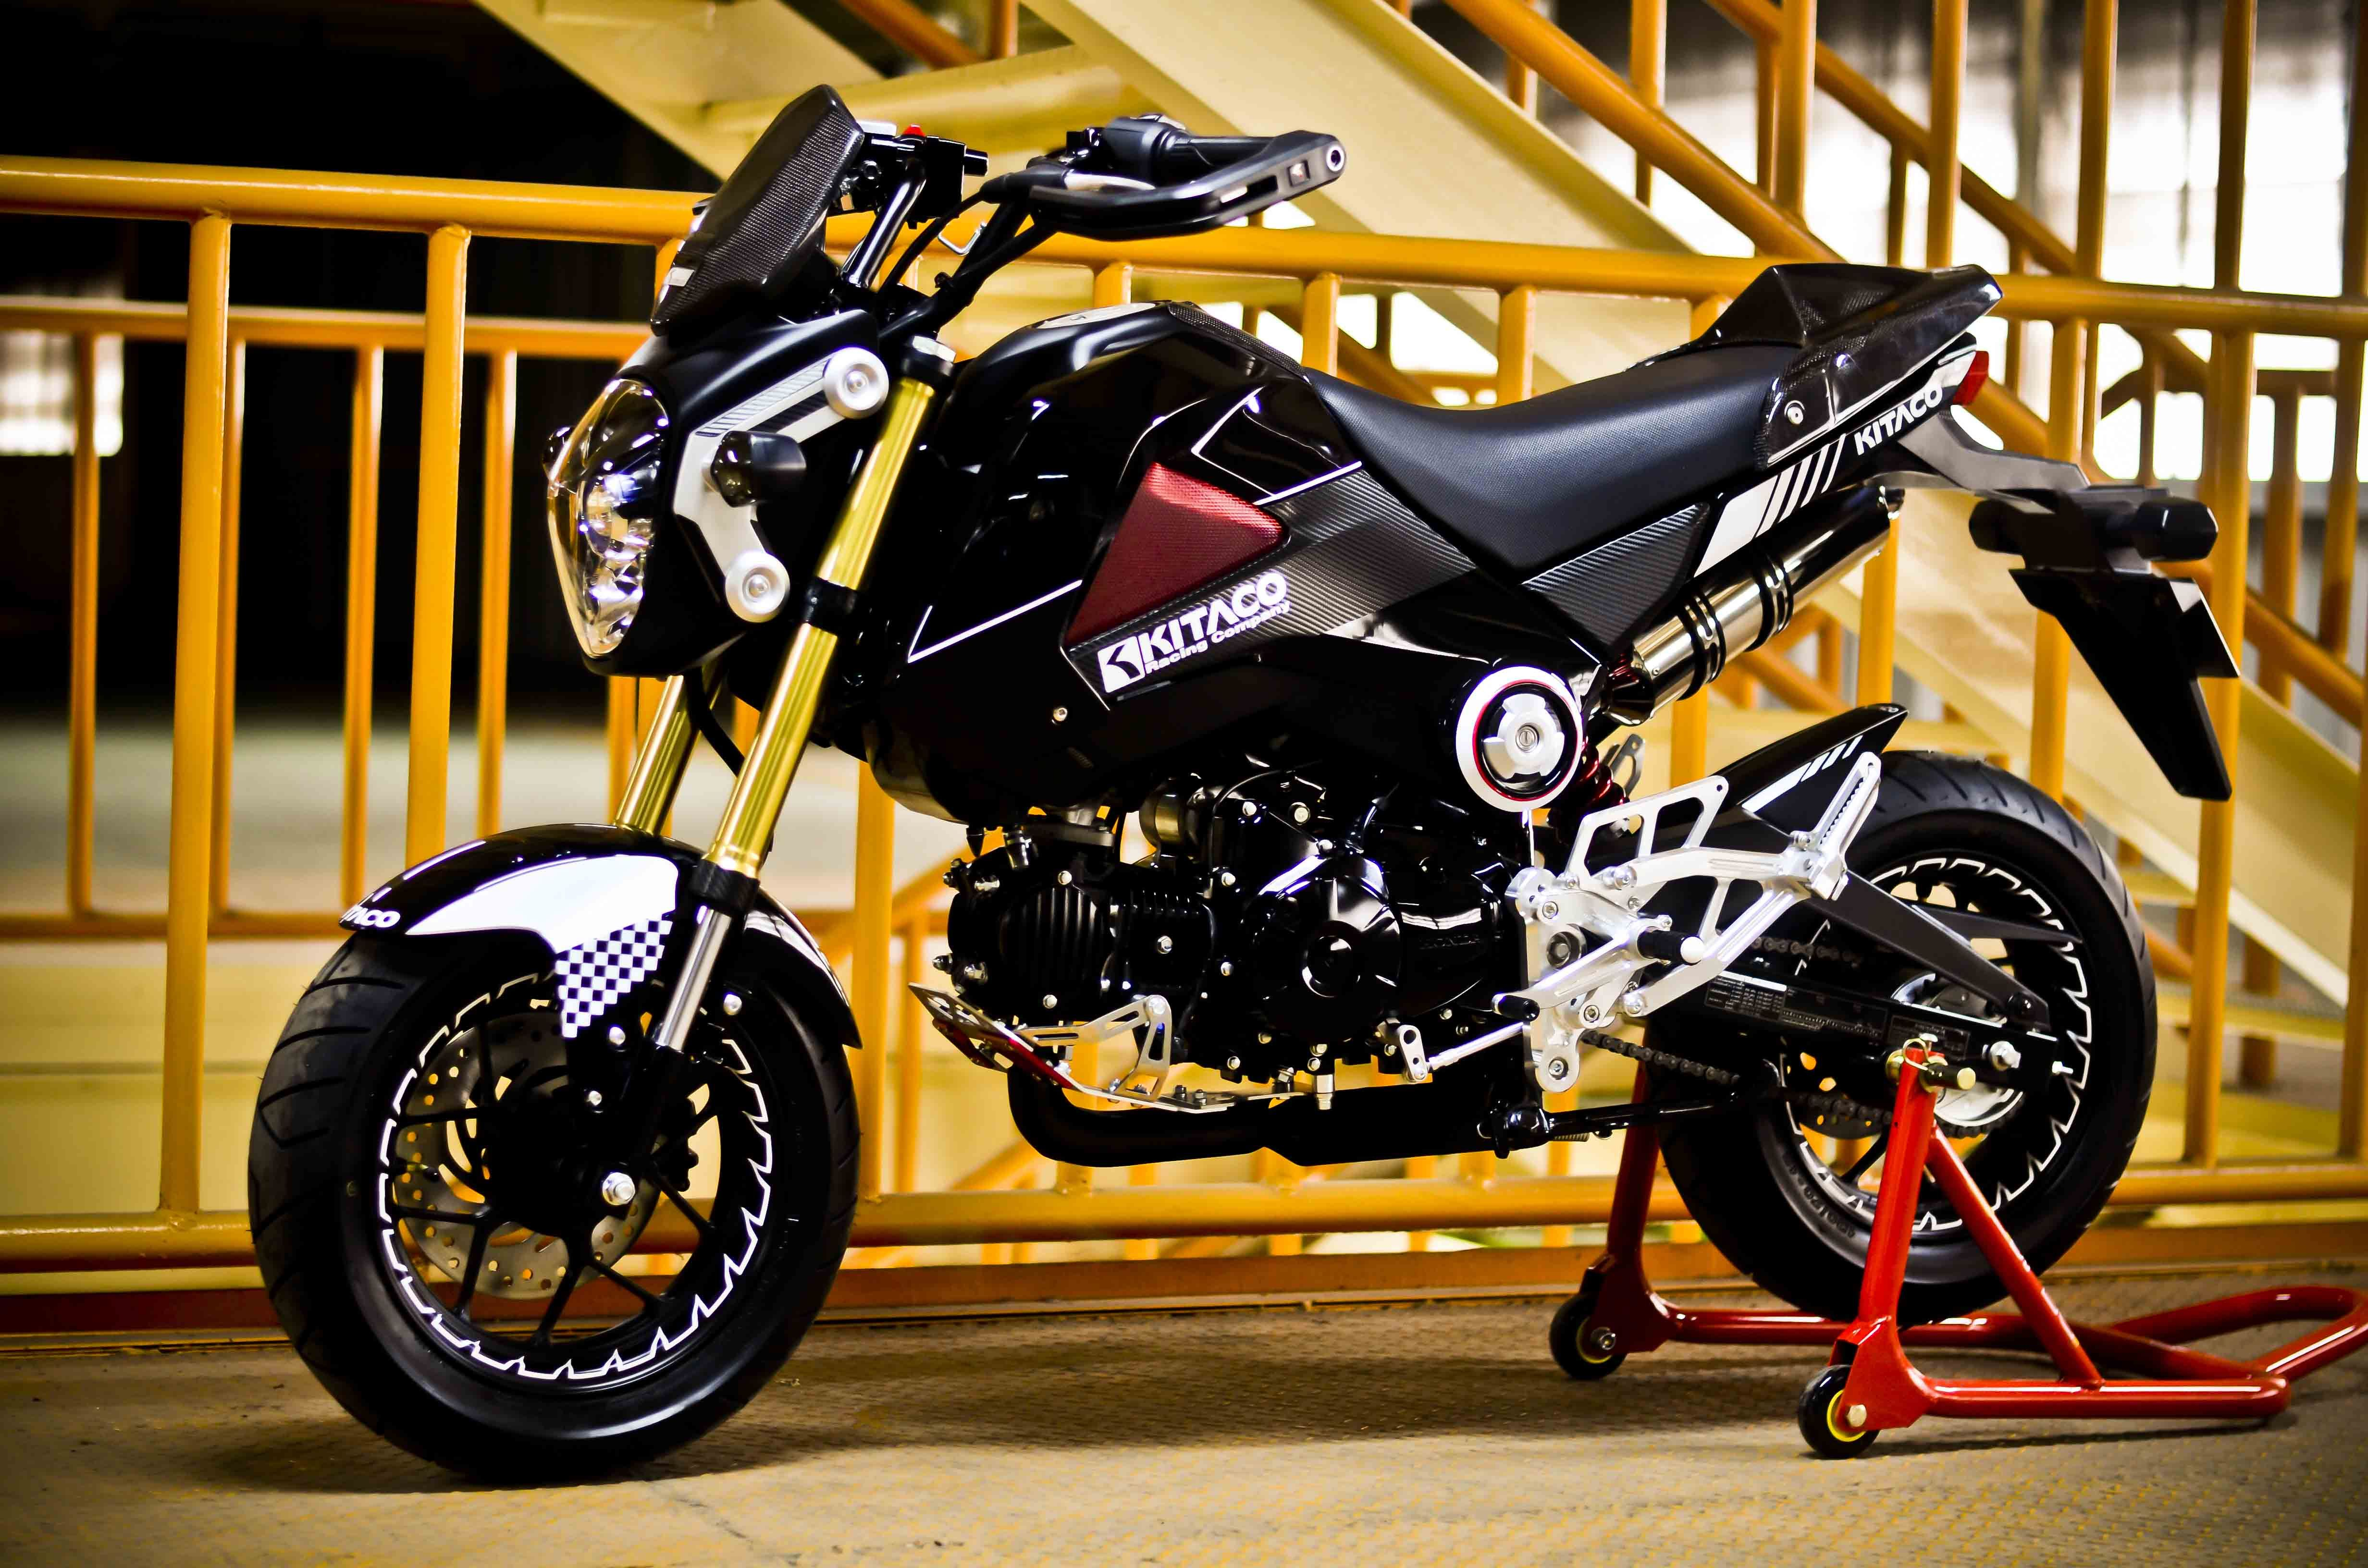 honda msx125 msx nan lmaz pinterest honda. Black Bedroom Furniture Sets. Home Design Ideas